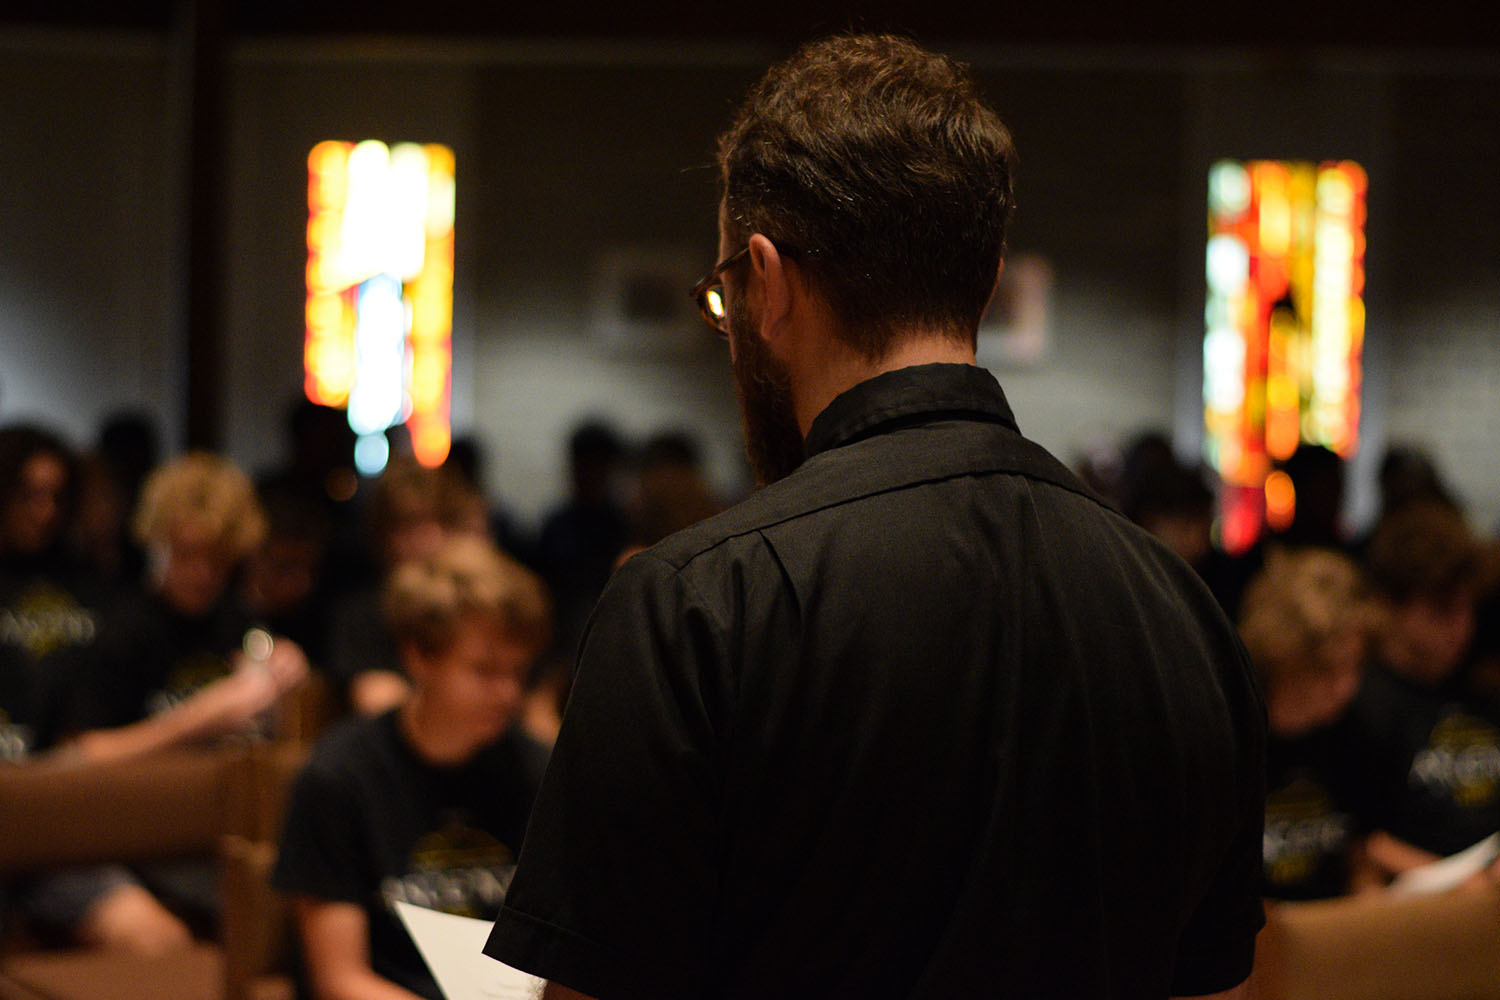 Fr. Chris Schroeder, S.J. addresses the sophomores in the chapel before they embarked on Ascent Sept. 17.